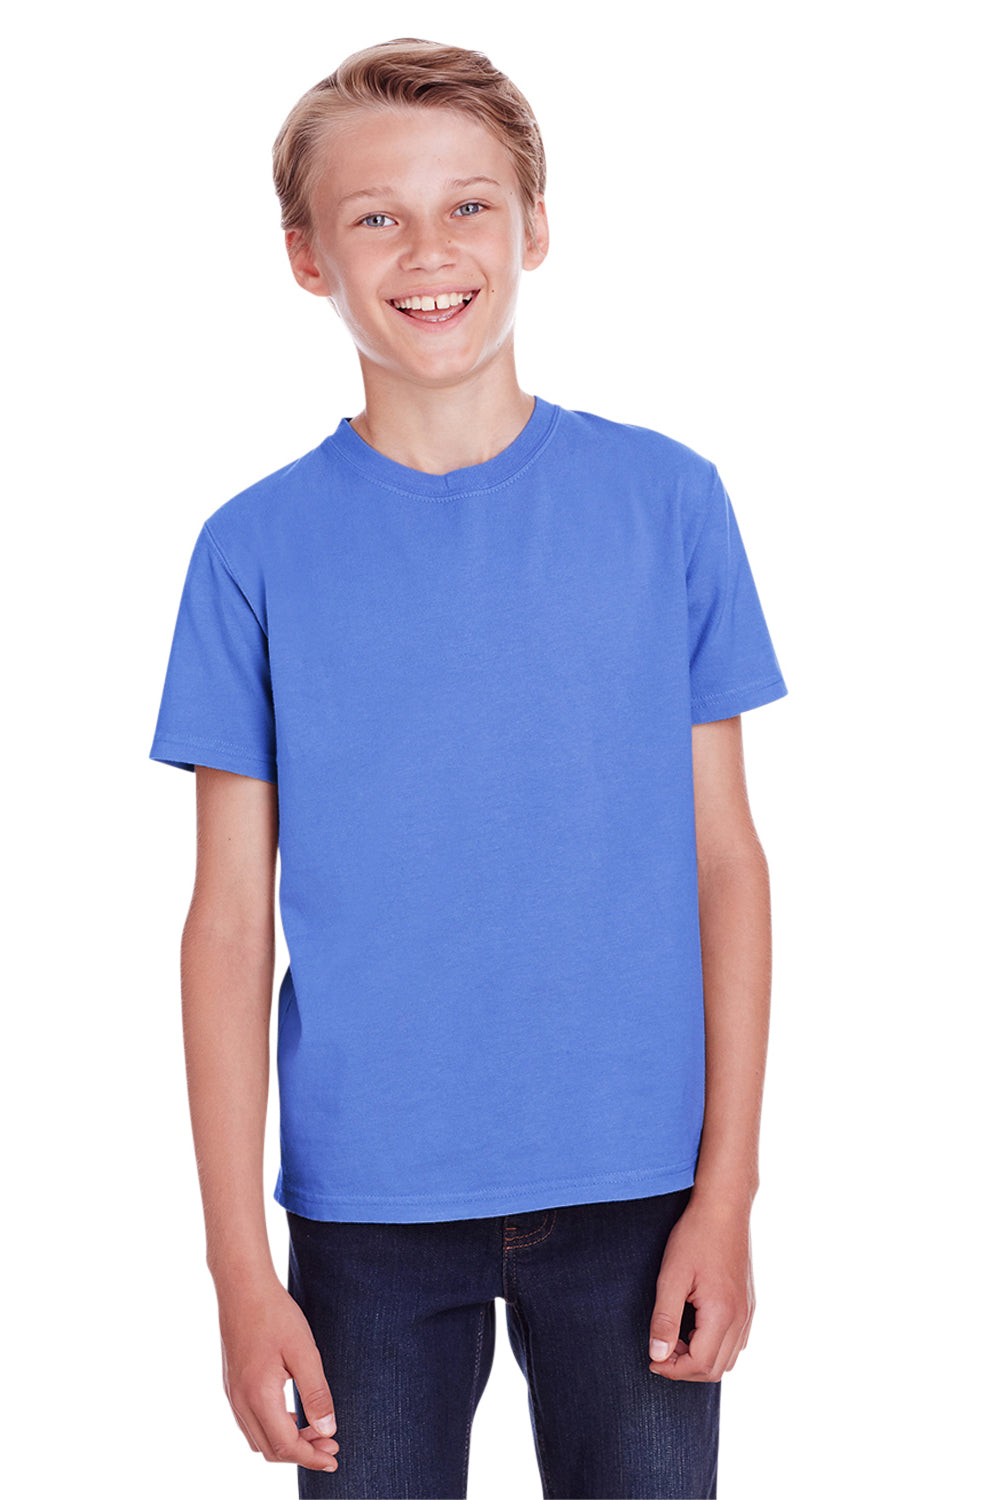 ComfortWash by Hanes GDH175 Youth Short Sleeve Crewneck T-Shirt Deep Forte Blue Front